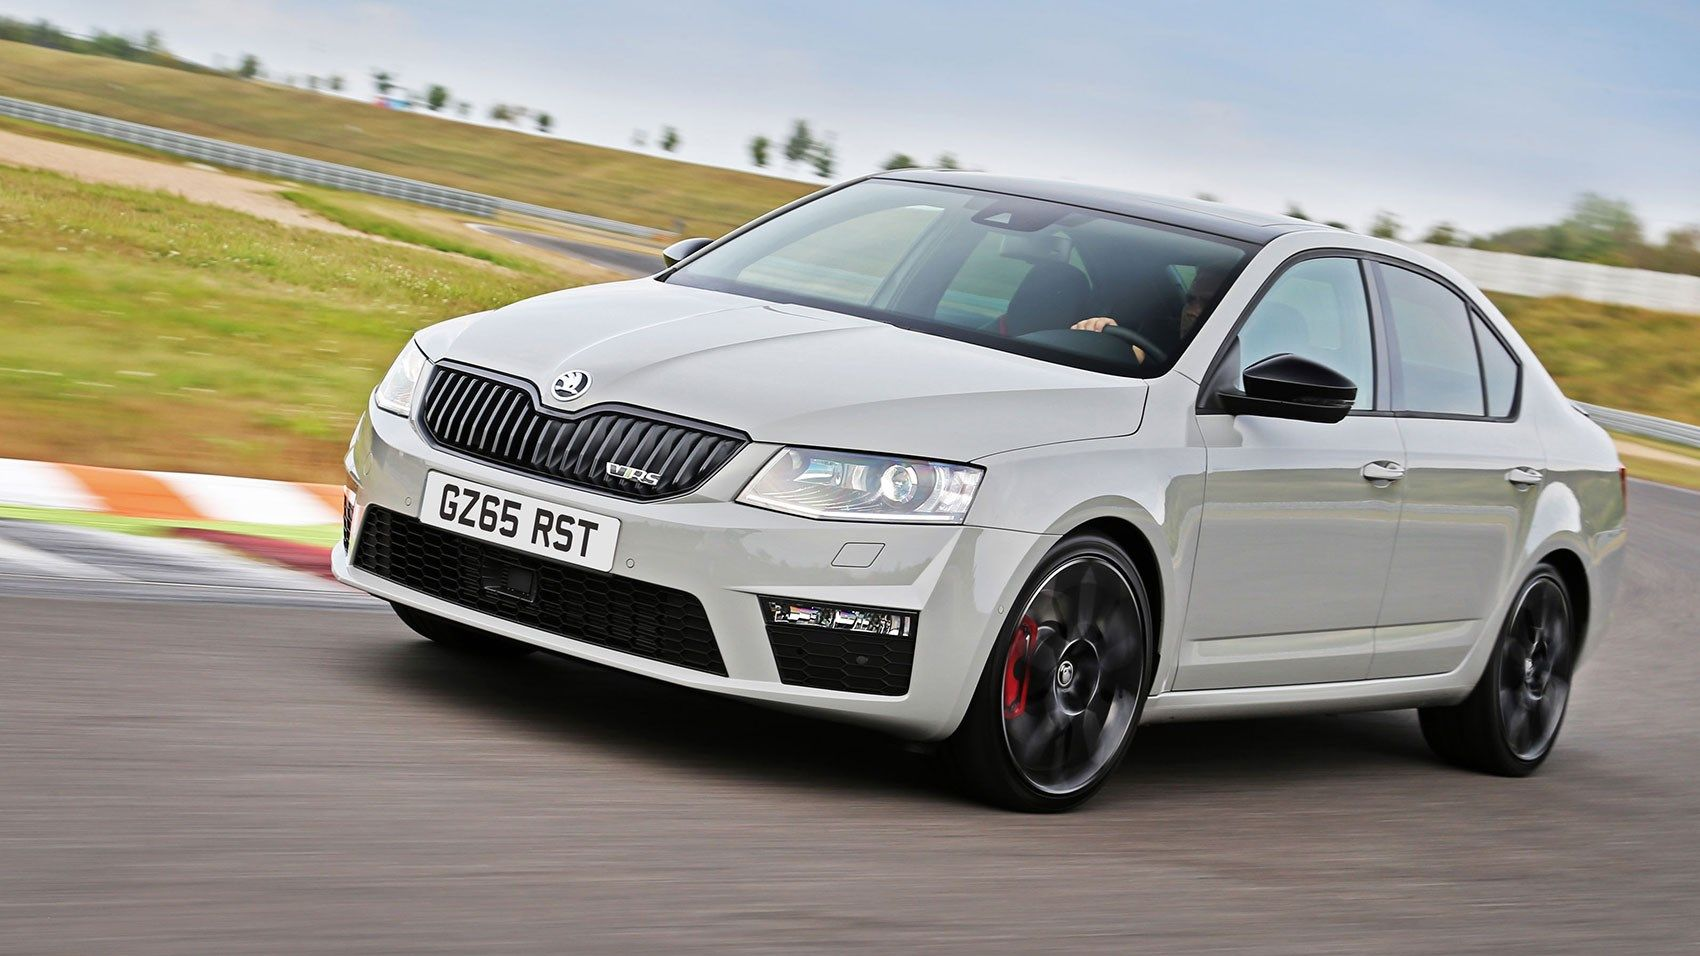 octavia vrs steel grey Skoda cars Pinterest